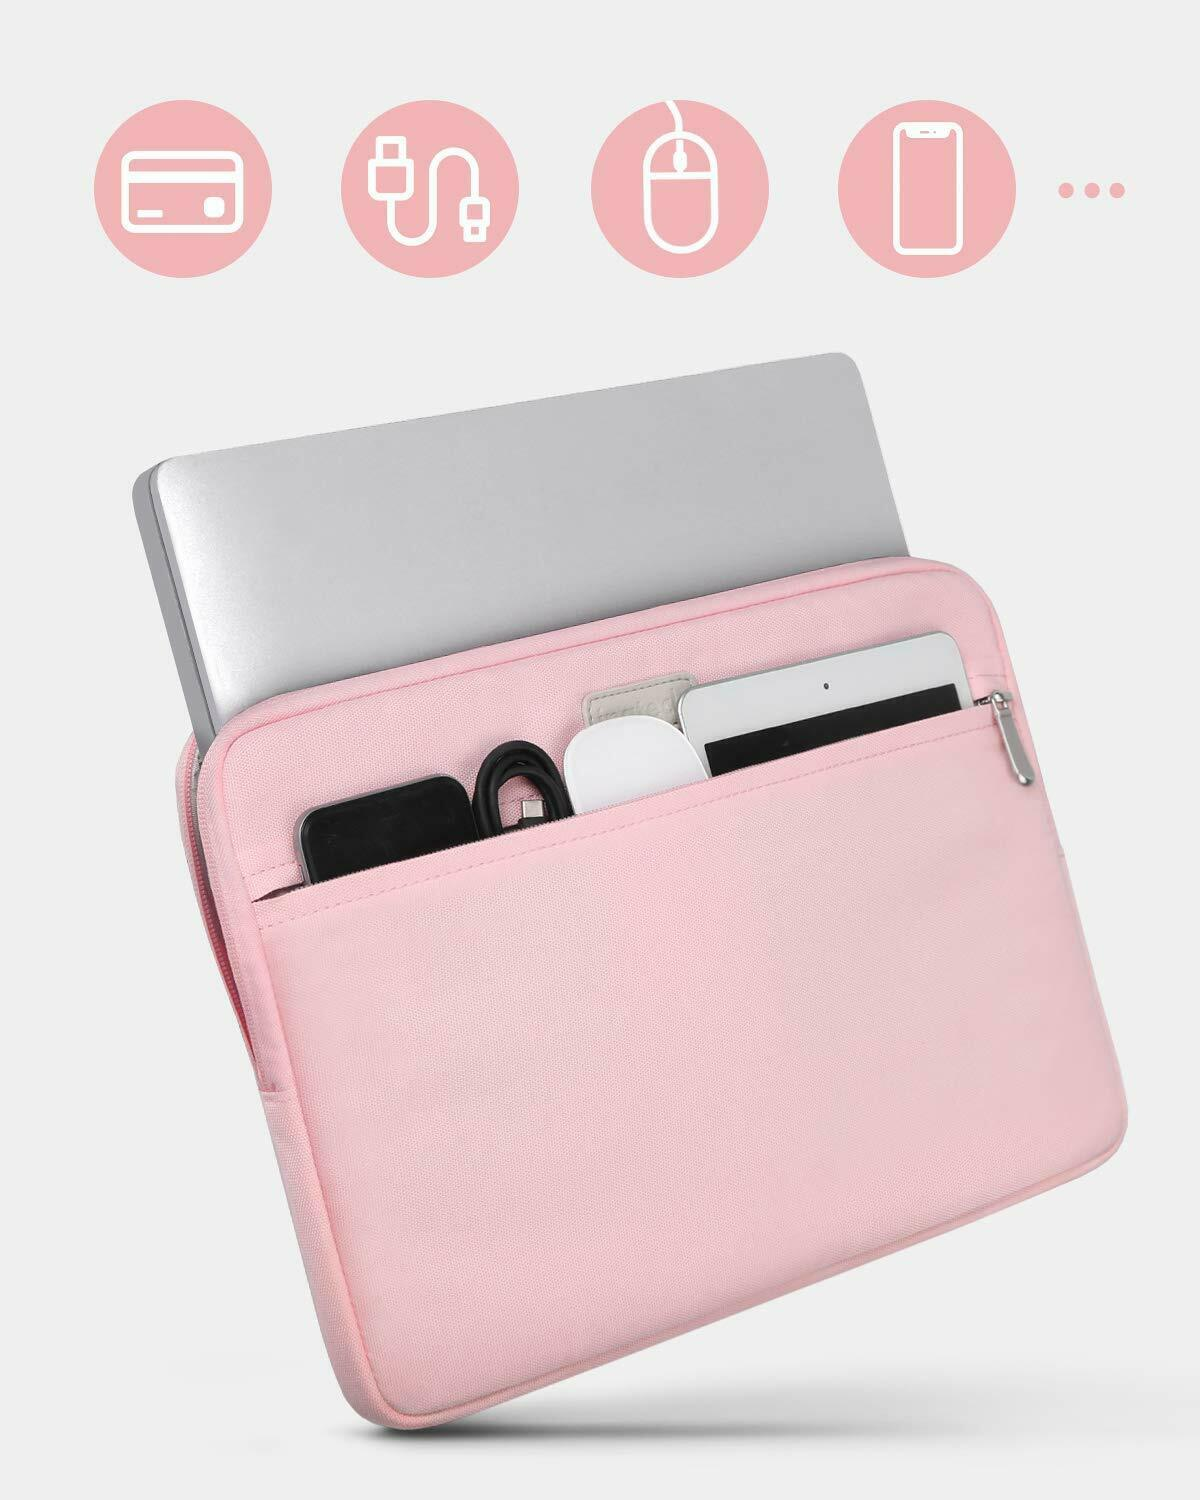 Inateck 13 Inch MacBook Air/Pro Retina Laptop Sleeve LC1300S, Pink